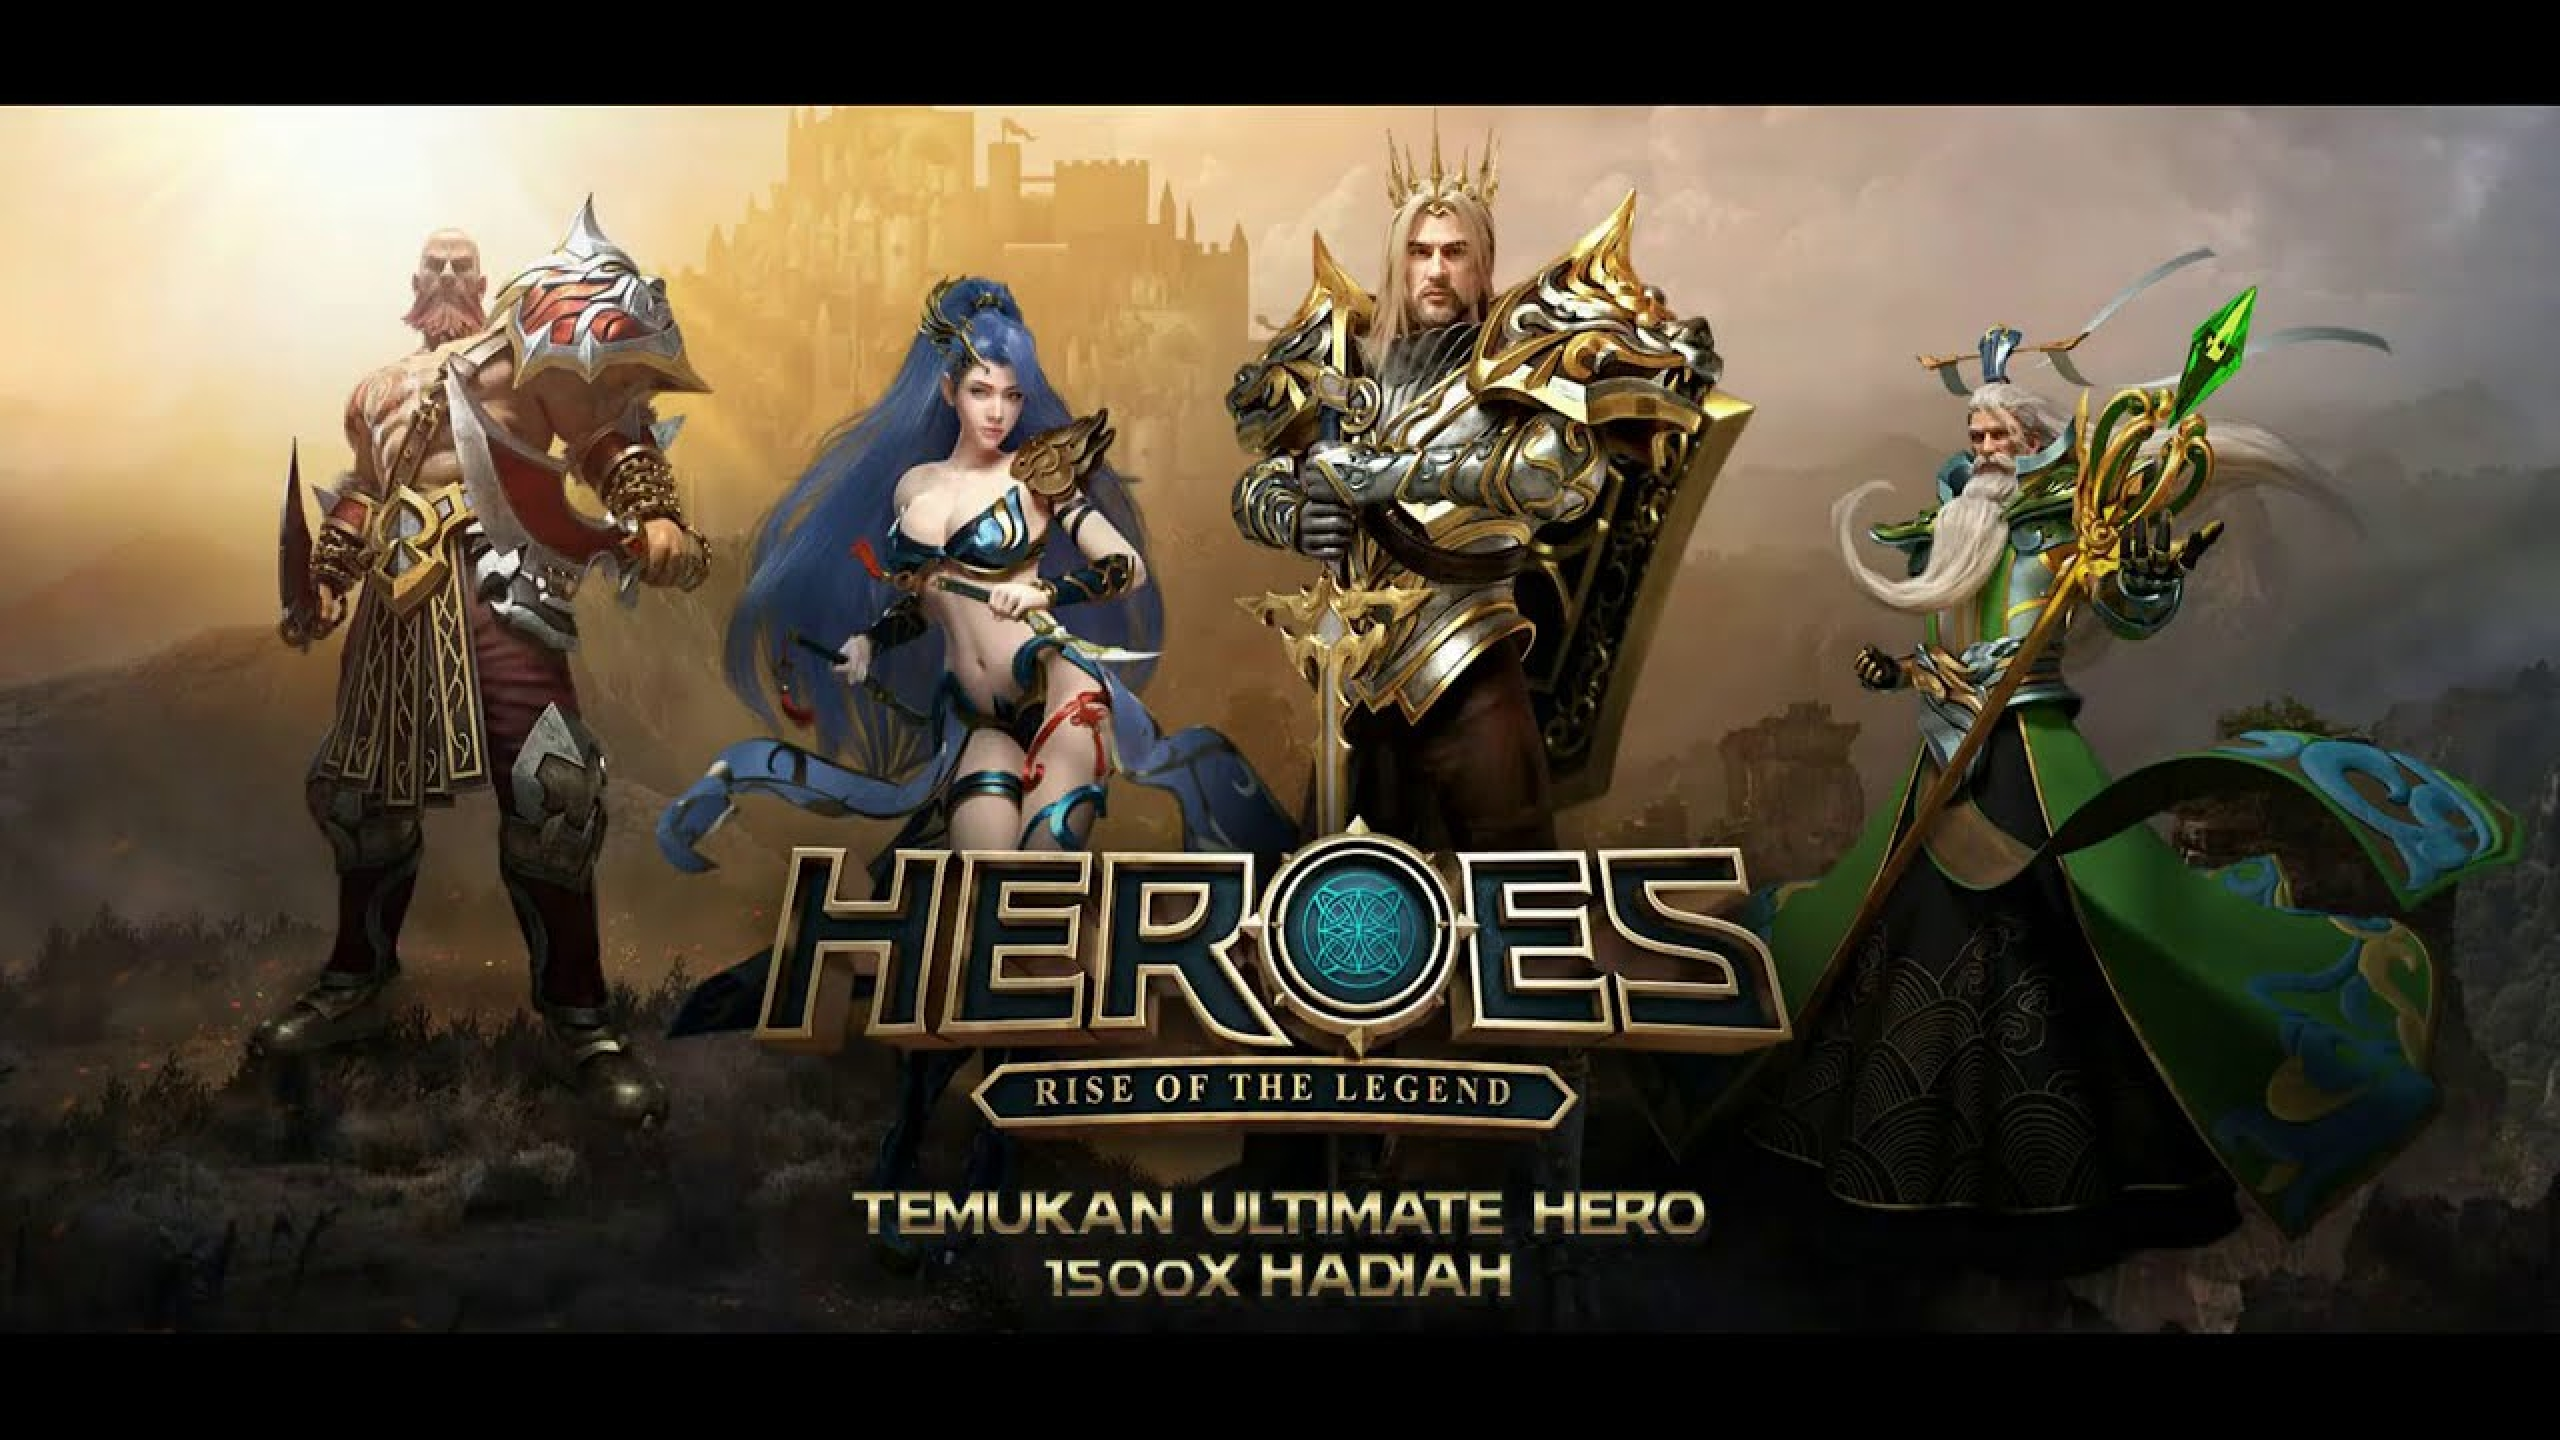 The Heroes Rise of the Legend Online Slot Demo Game by Spade Gaming